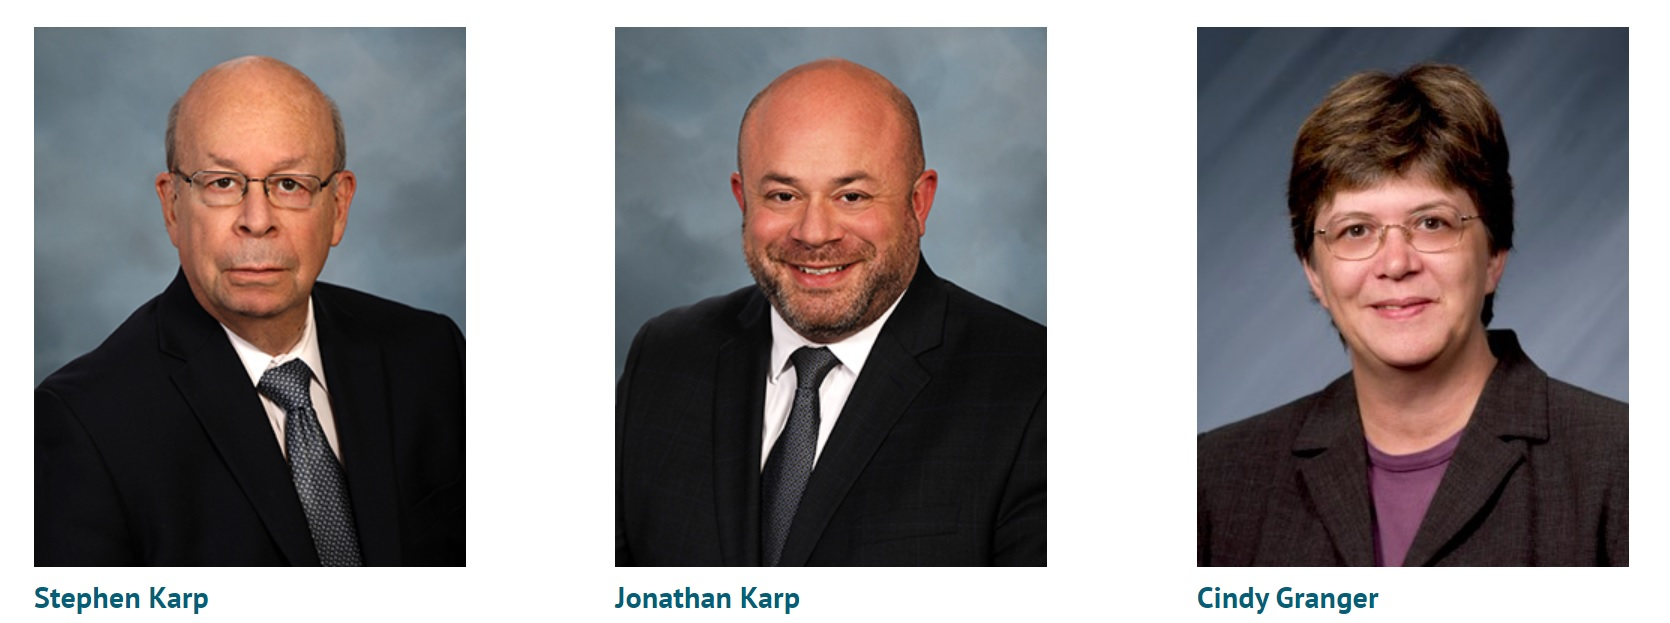 law office web design image of staff directory images of stephen karp jonathan karp and cindy granger of karp law office